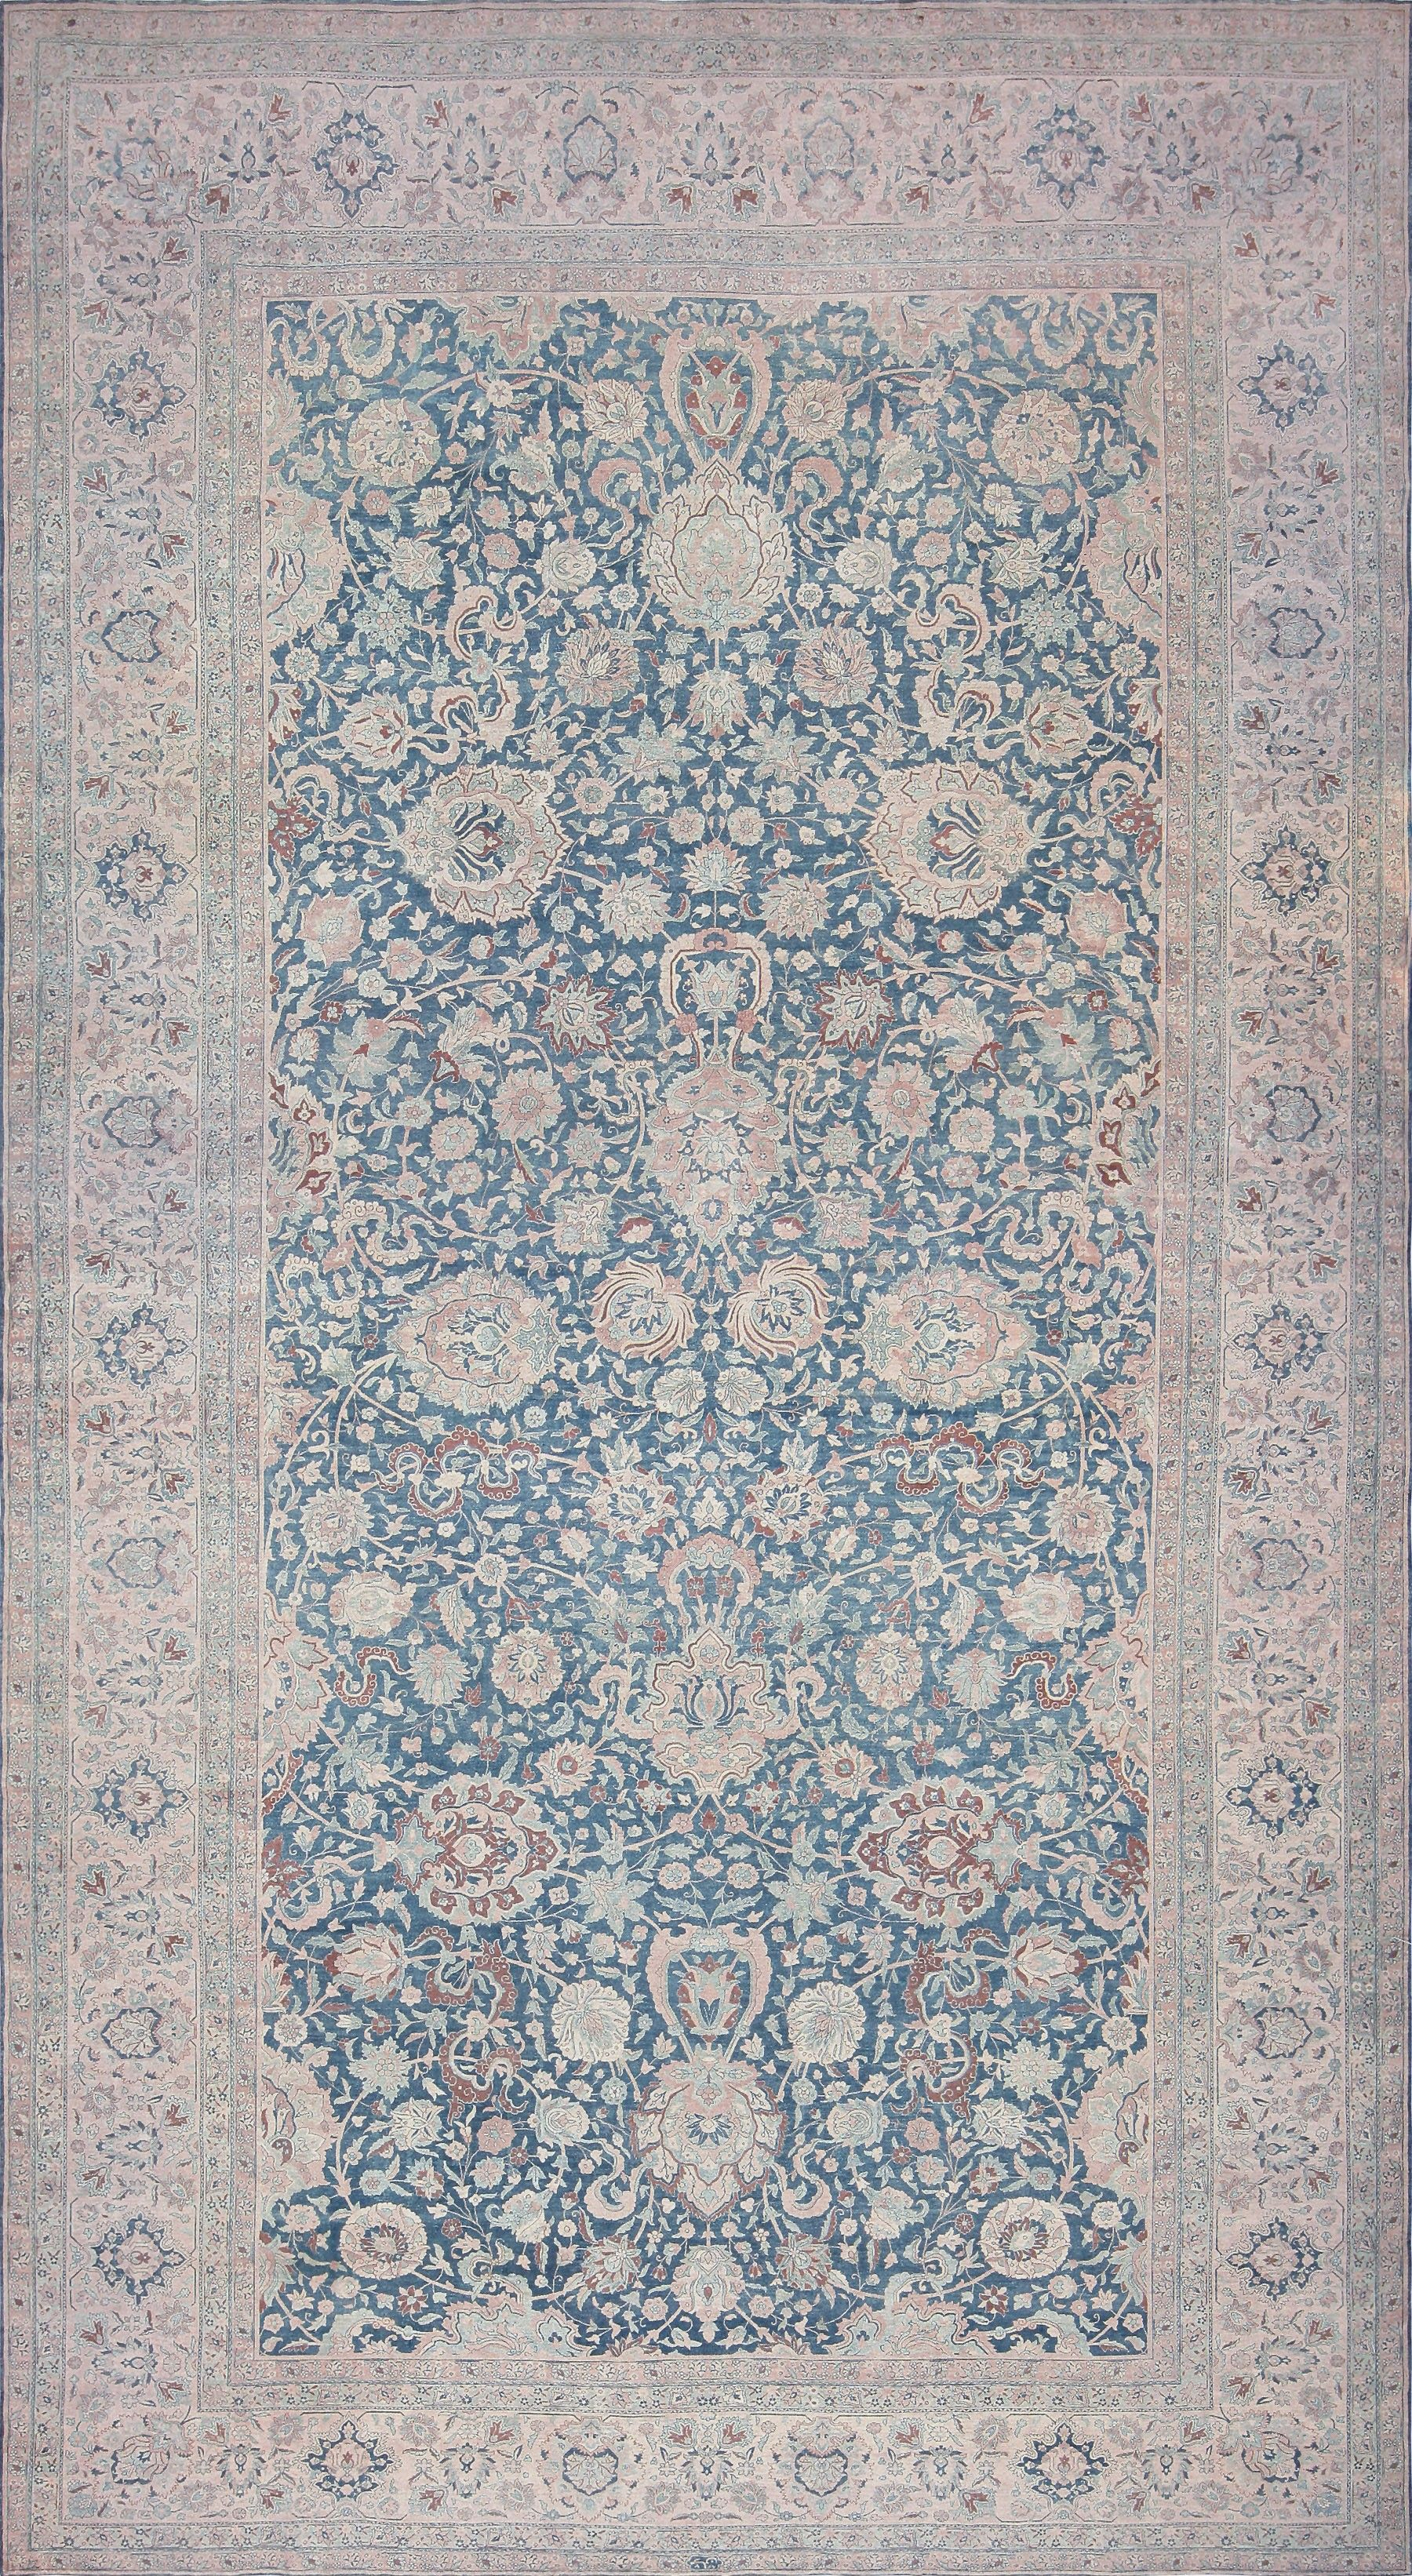 Large Oversized Blue Oriental Antique Persian Kerman